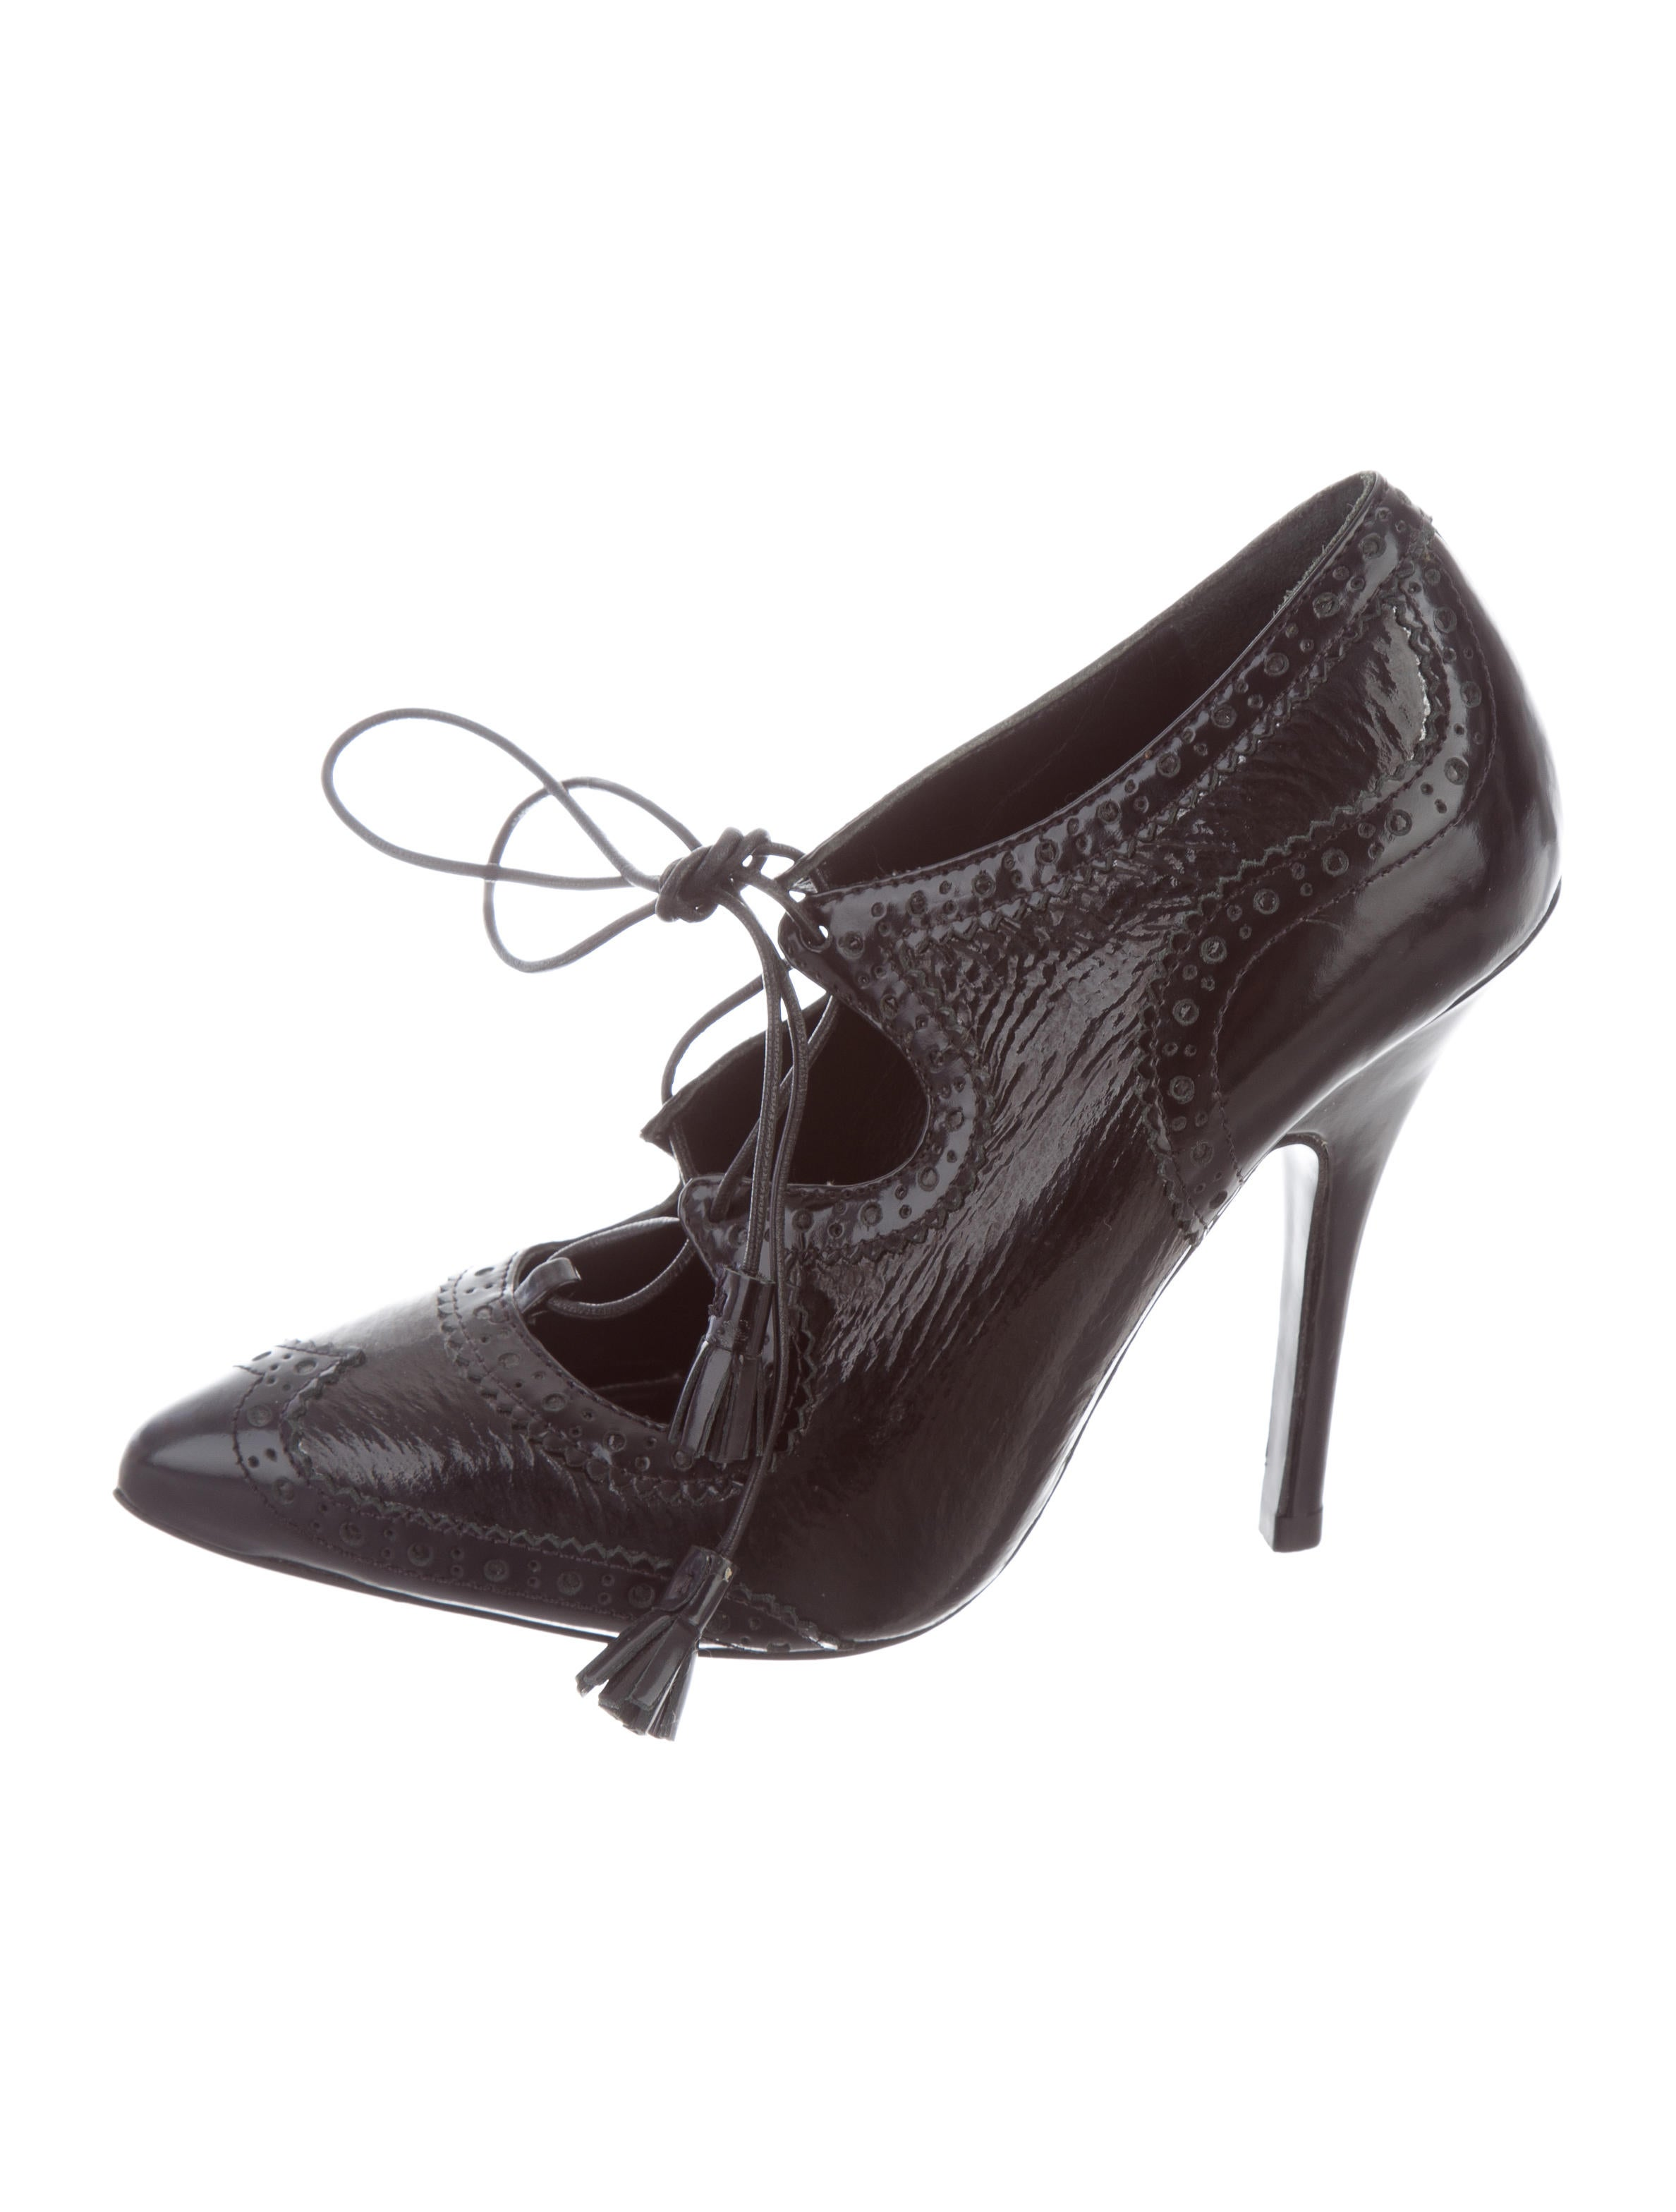 Tory Burch Leather Brogue-Trimmed Pumps buy cheap real xzYJm